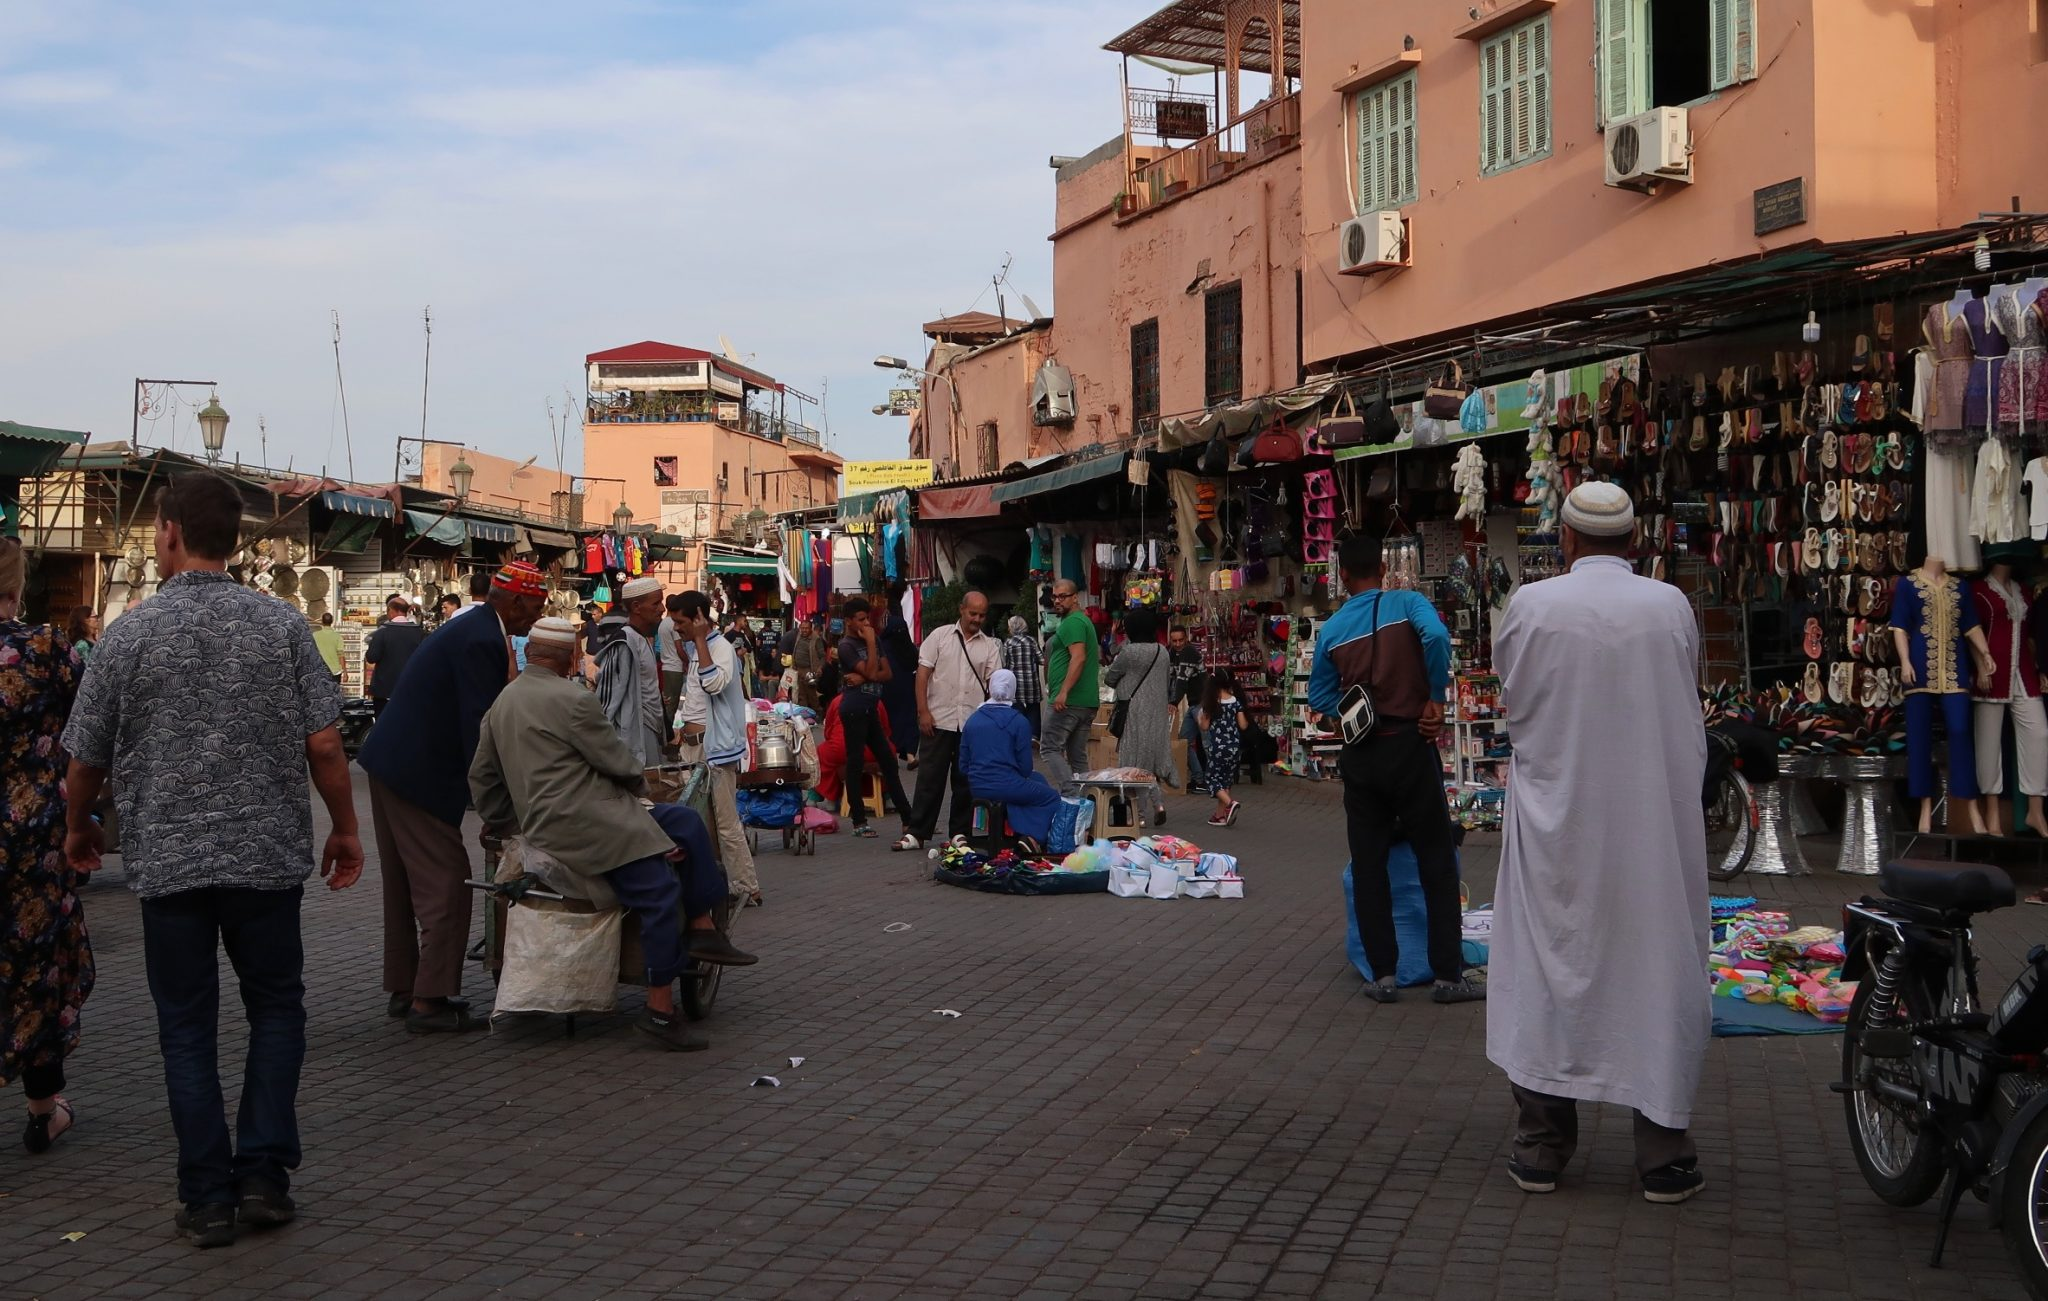 Marrakech basaari